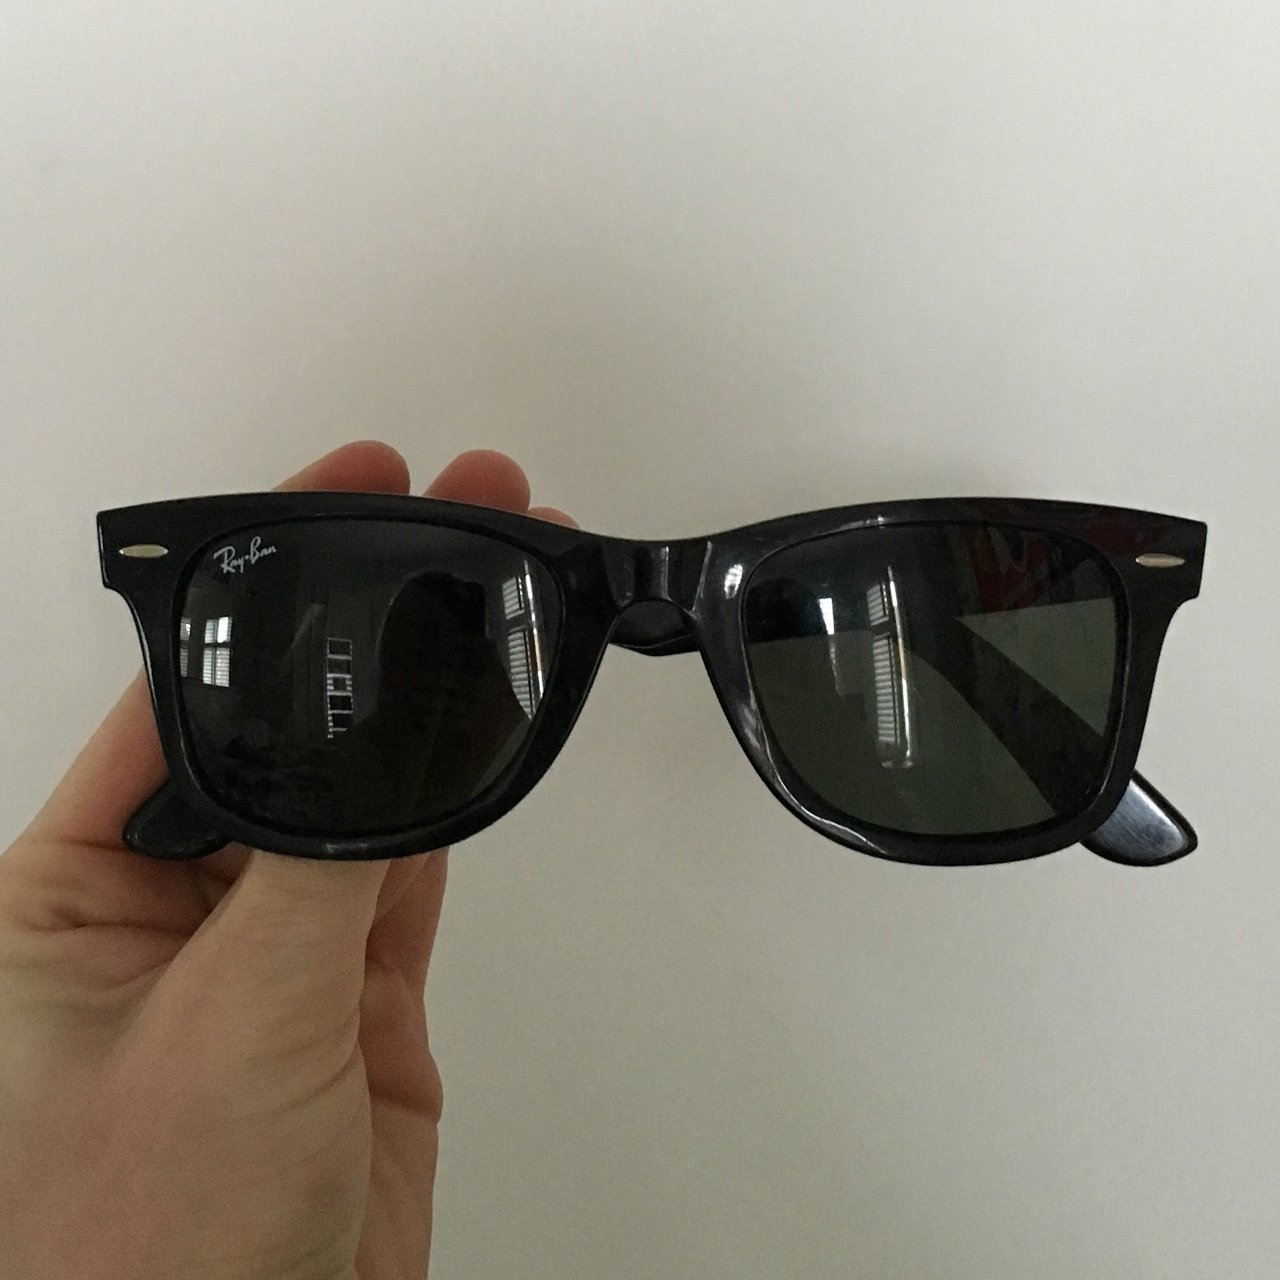 1827ad3987 Original Ray Ban wayfarer! ABSOLUTELY NO OFFERS!!!They are I - Depop